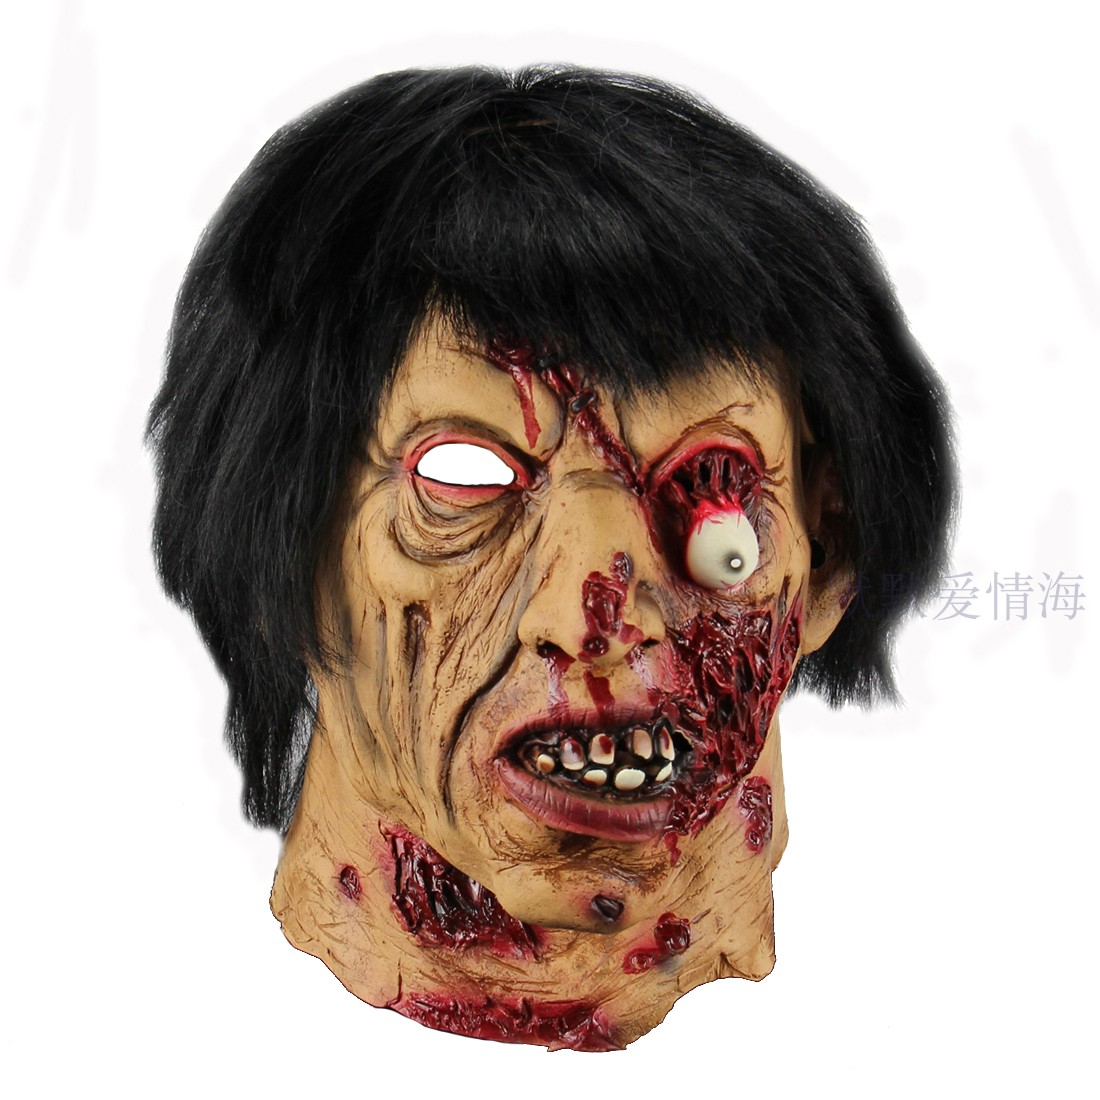 Black hair zombie horror latex scary headgear mask Carnival haunted house dress dance props adult